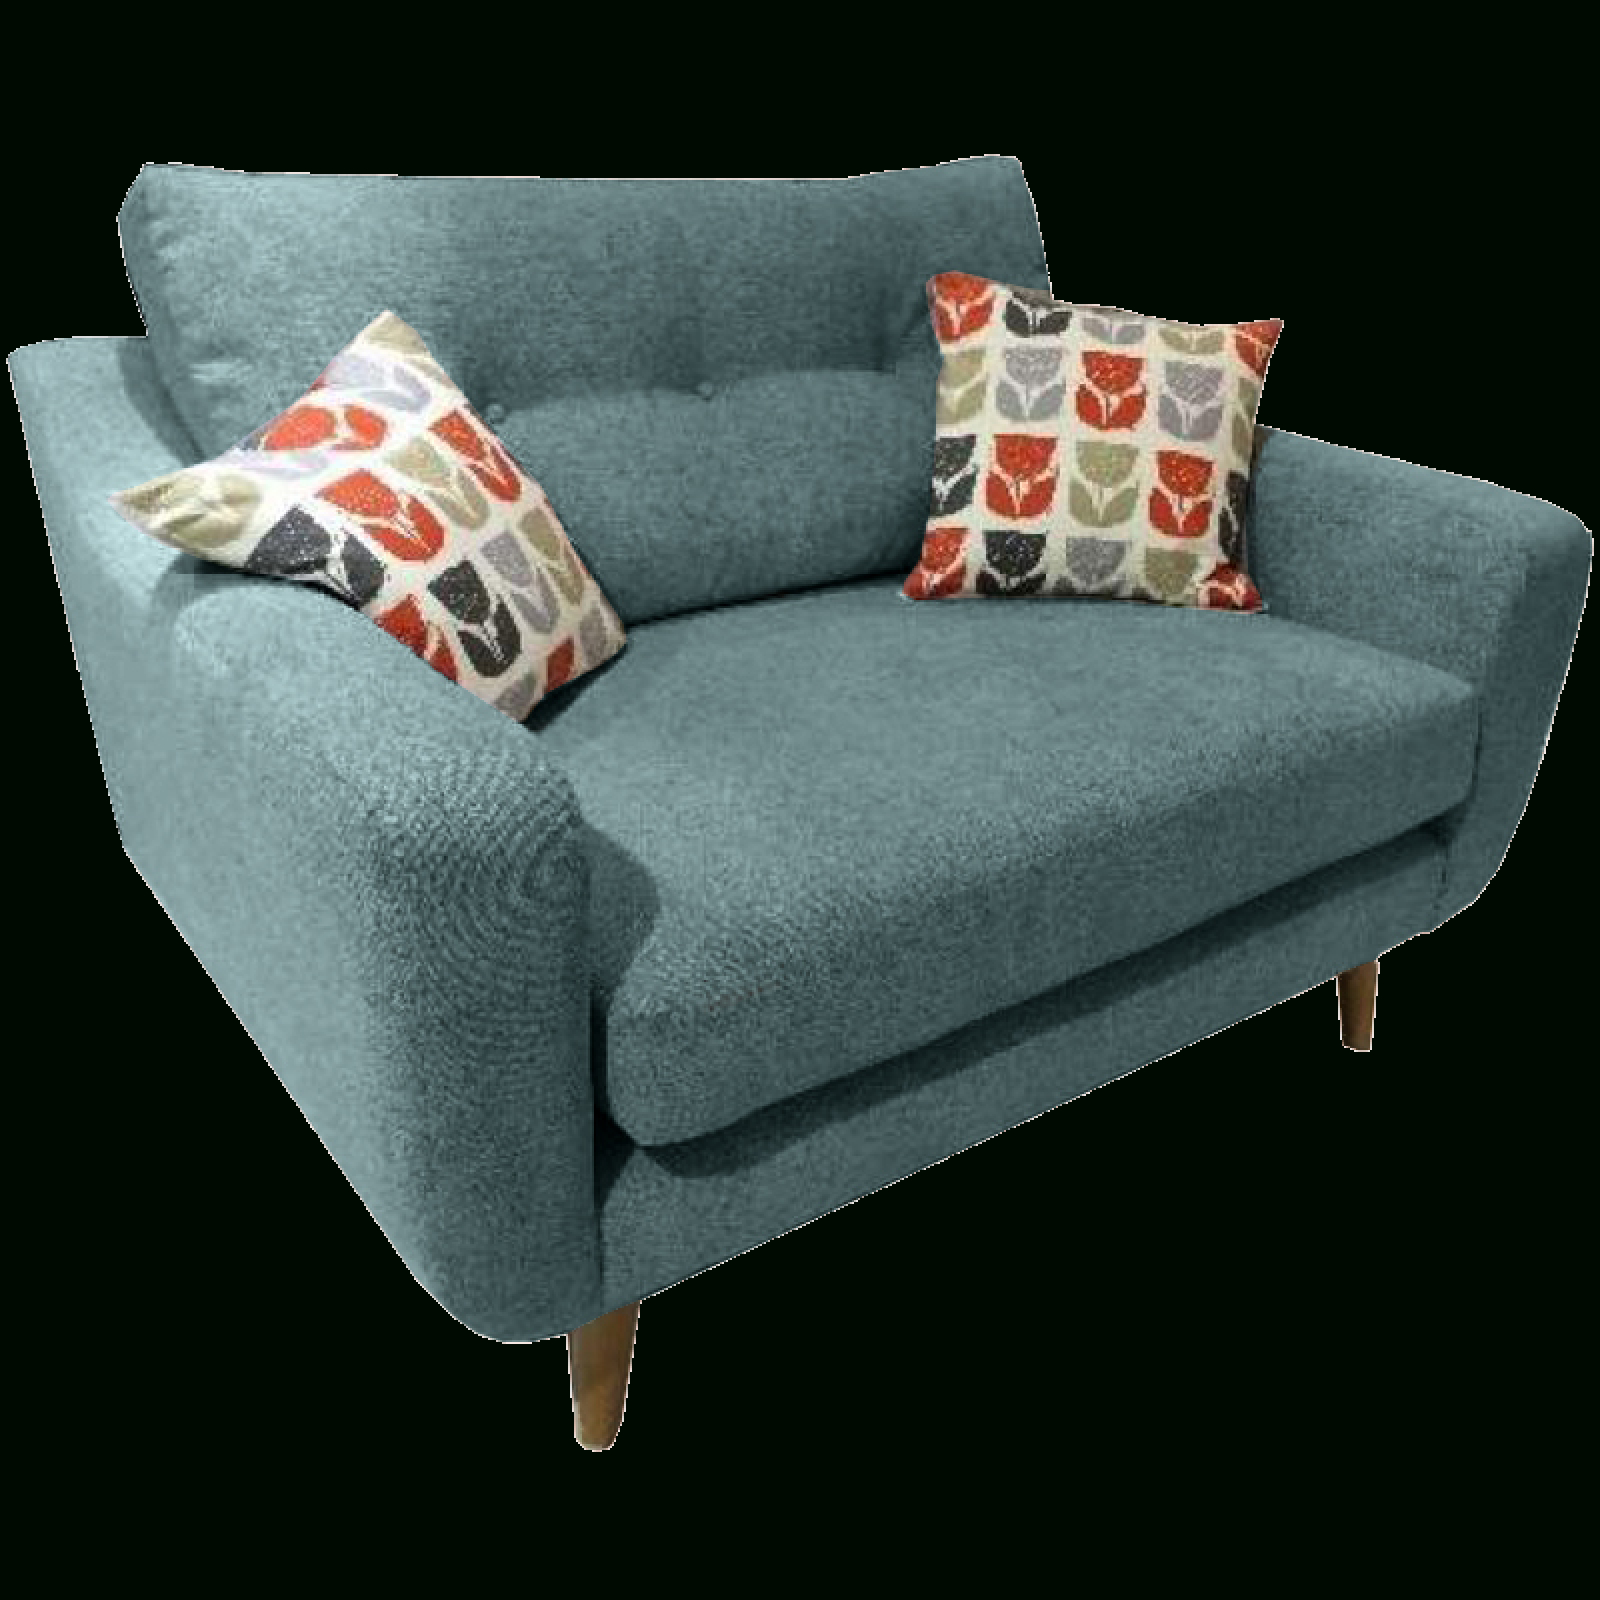 Latest 4pc French Seamed Sectional Sofas Oblong Mustard Pertaining To Lisbon Snuggler Sofa Chairwhitemeadow (View 5 of 20)